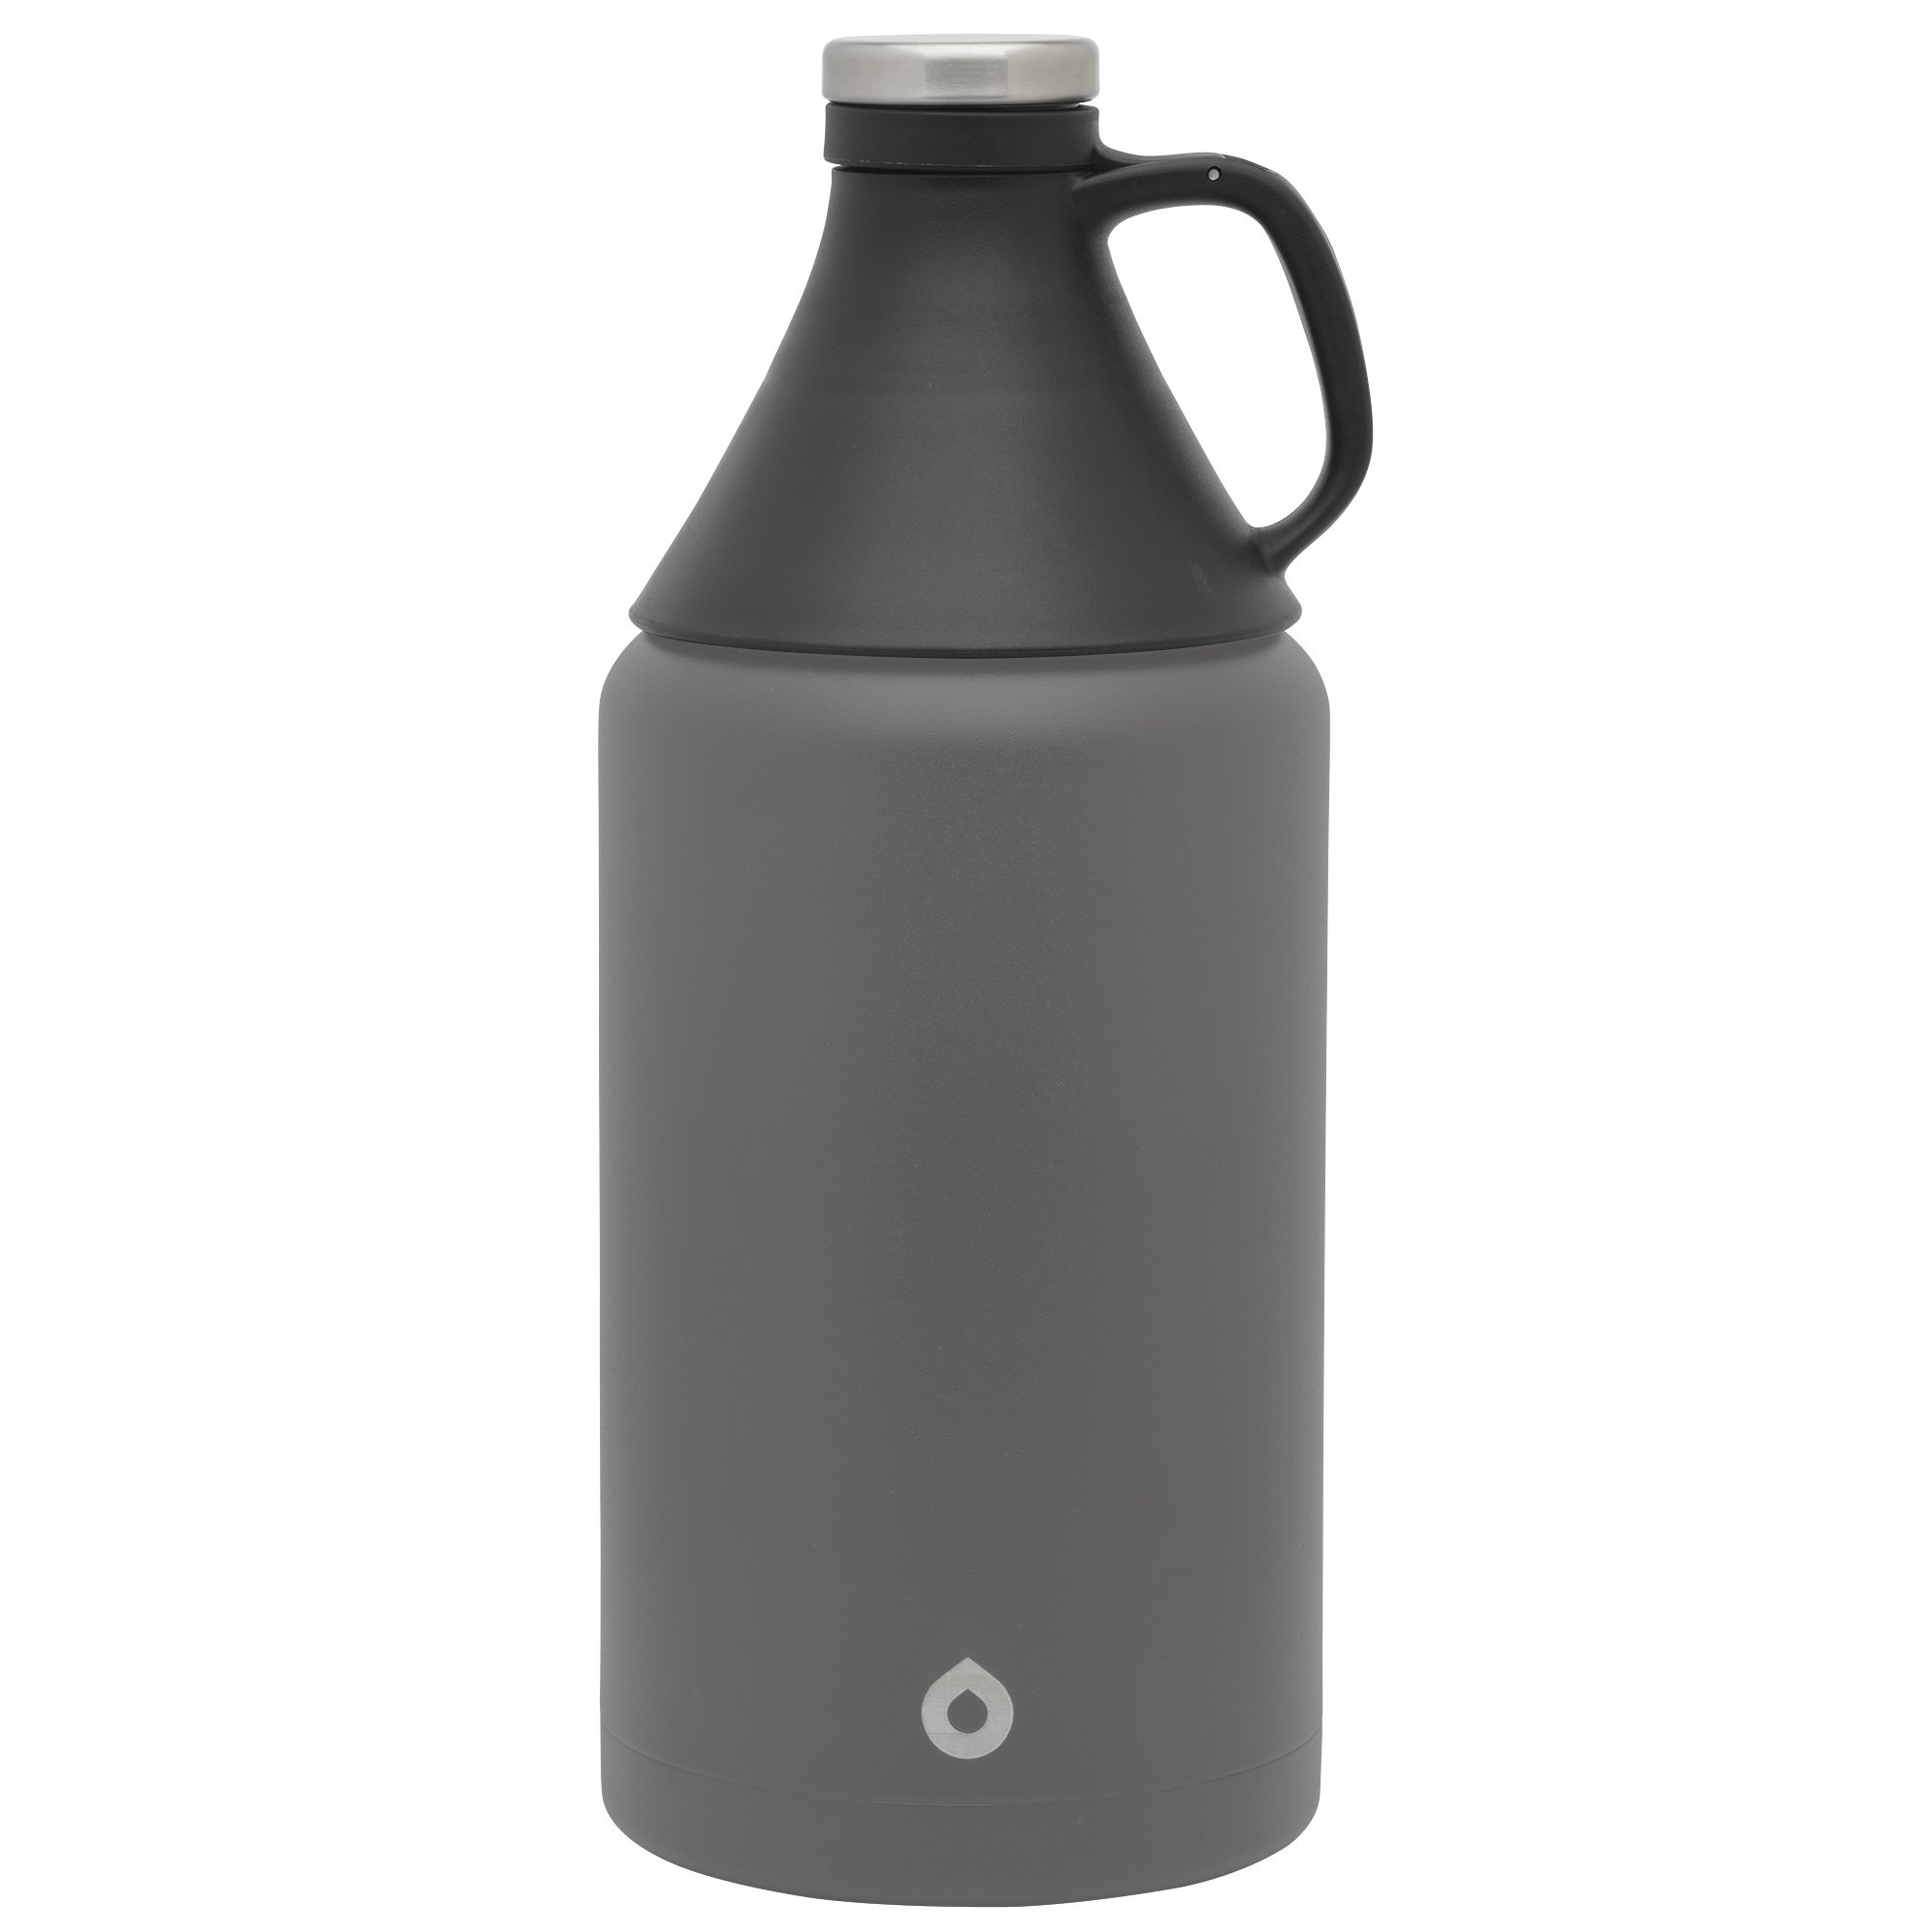 GoBottle 40480  Double Wall, Vacuum Insulated Stainless Steel Growler with Airtight Seal for Beer, Water, Coffee, and more, 64oz, Black